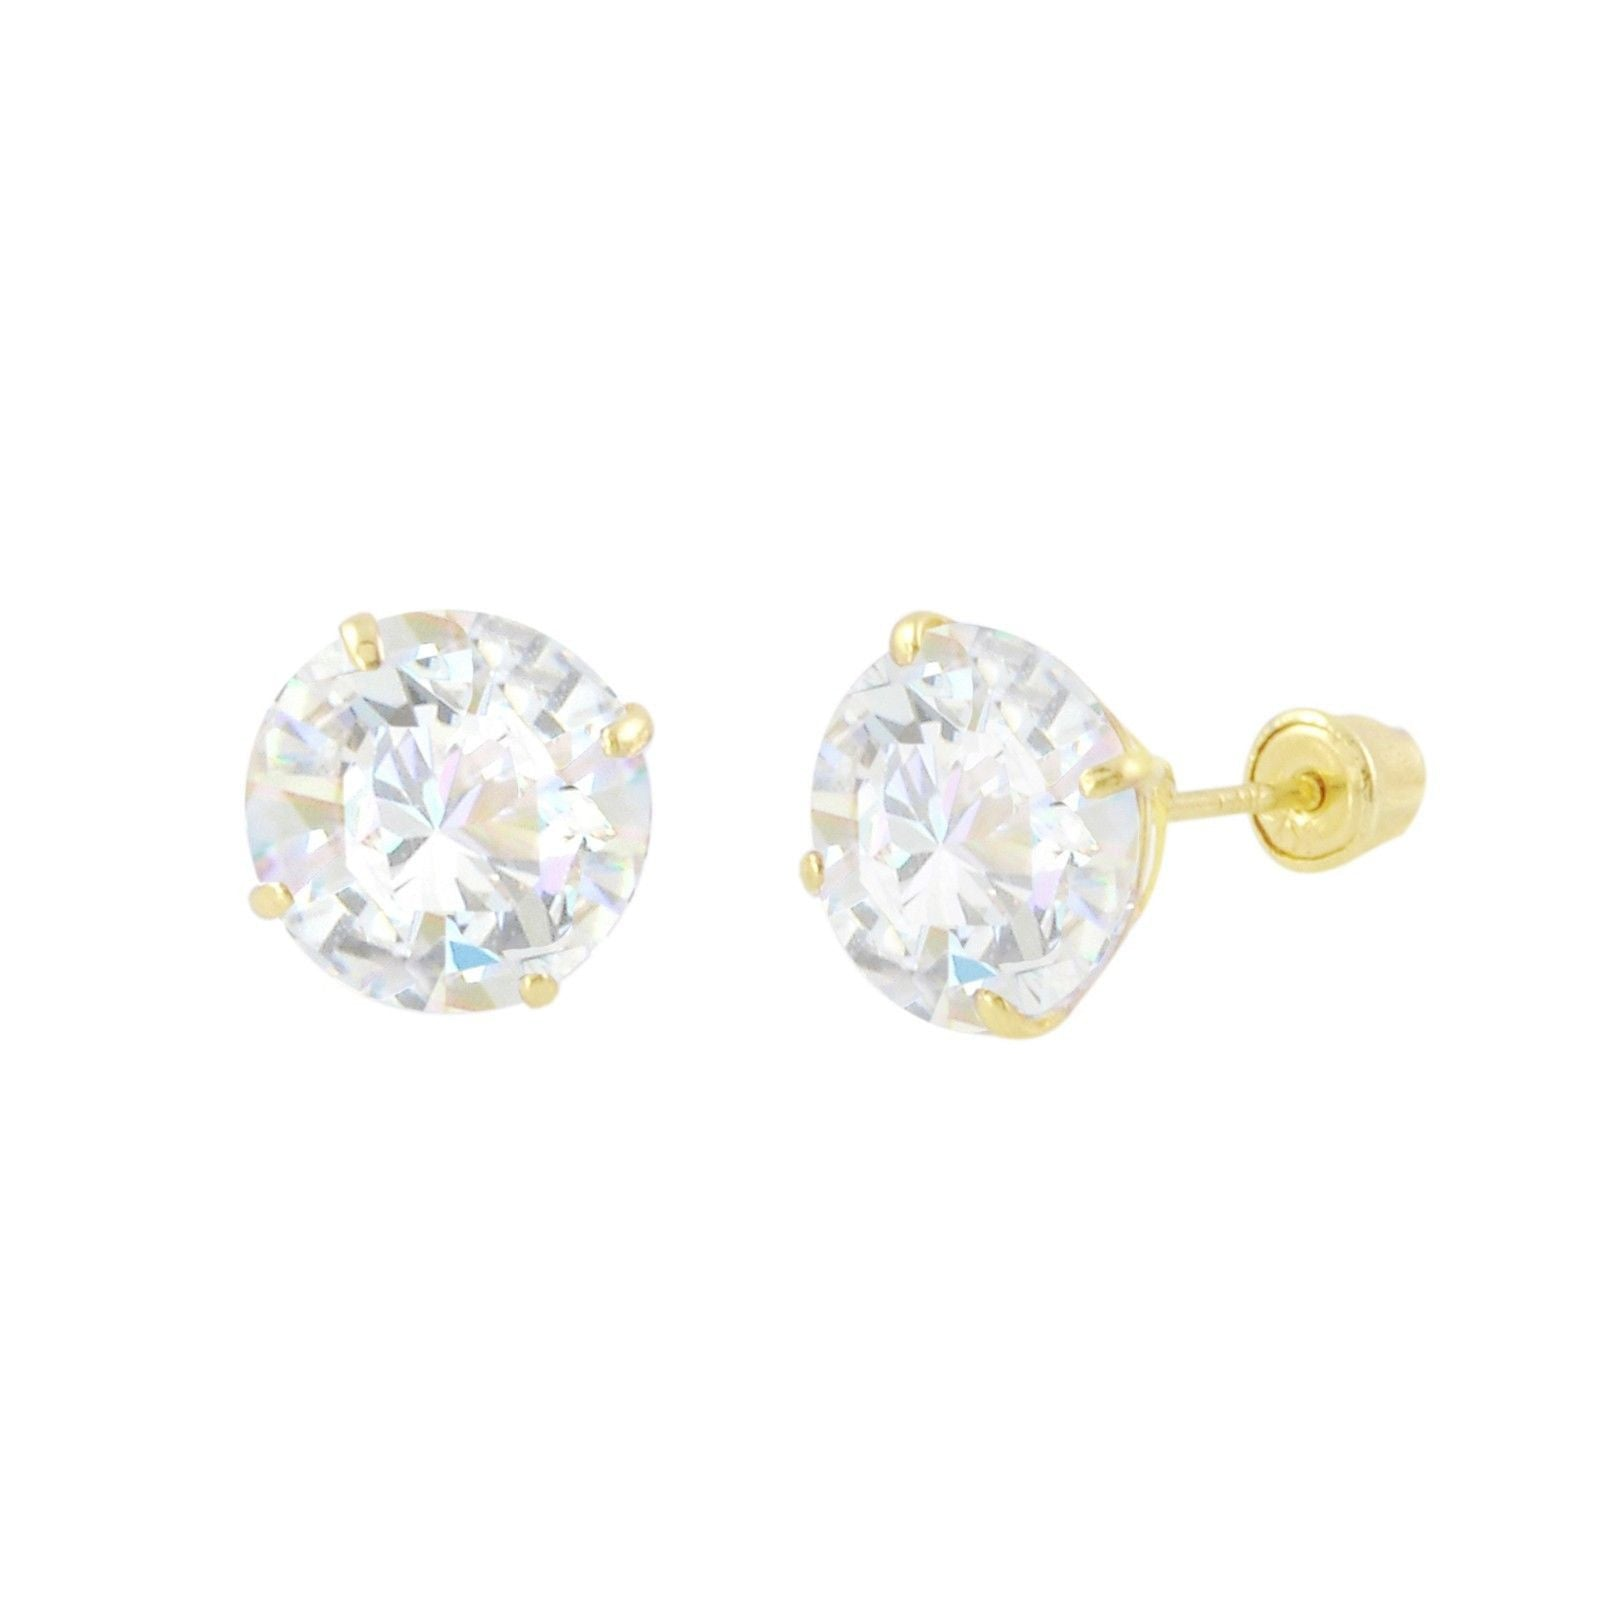 tw back earrings round stud screw backs with com in certified white set igi gold dp diamond amazon